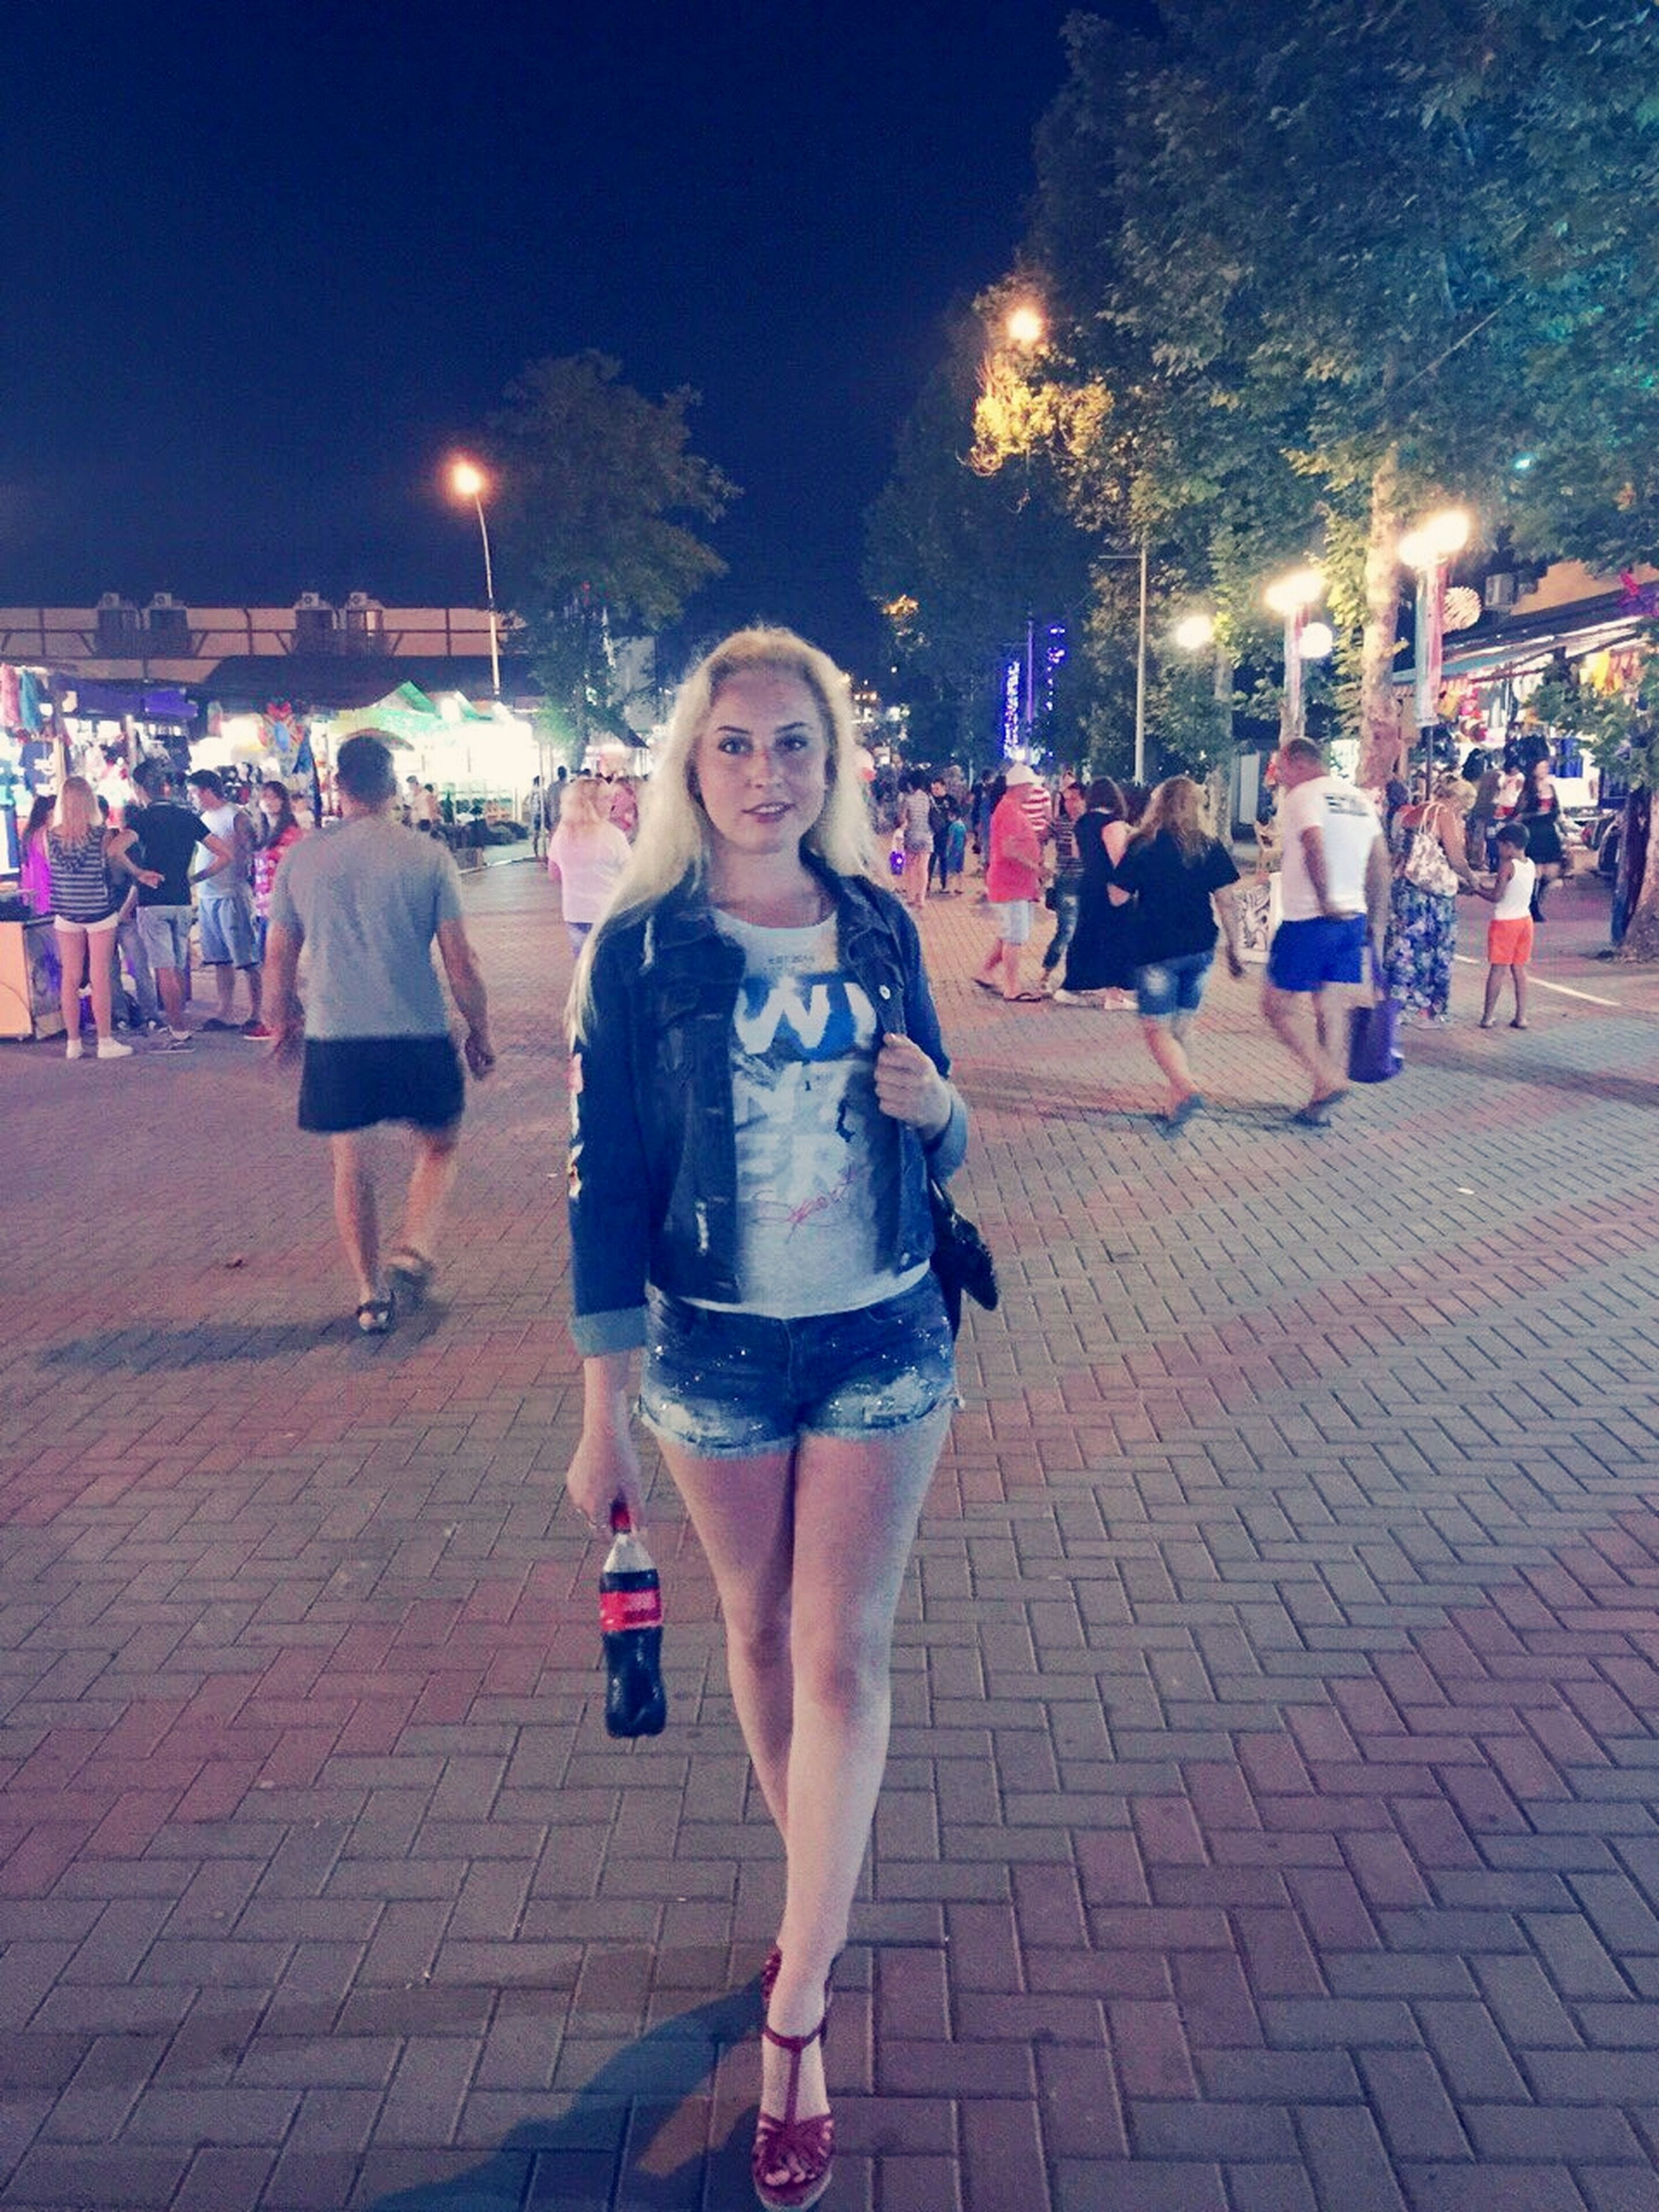 lifestyles, leisure activity, illuminated, casual clothing, standing, night, young women, front view, looking at camera, young adult, street, enjoyment, portrait, person, happiness, building exterior, incidental people